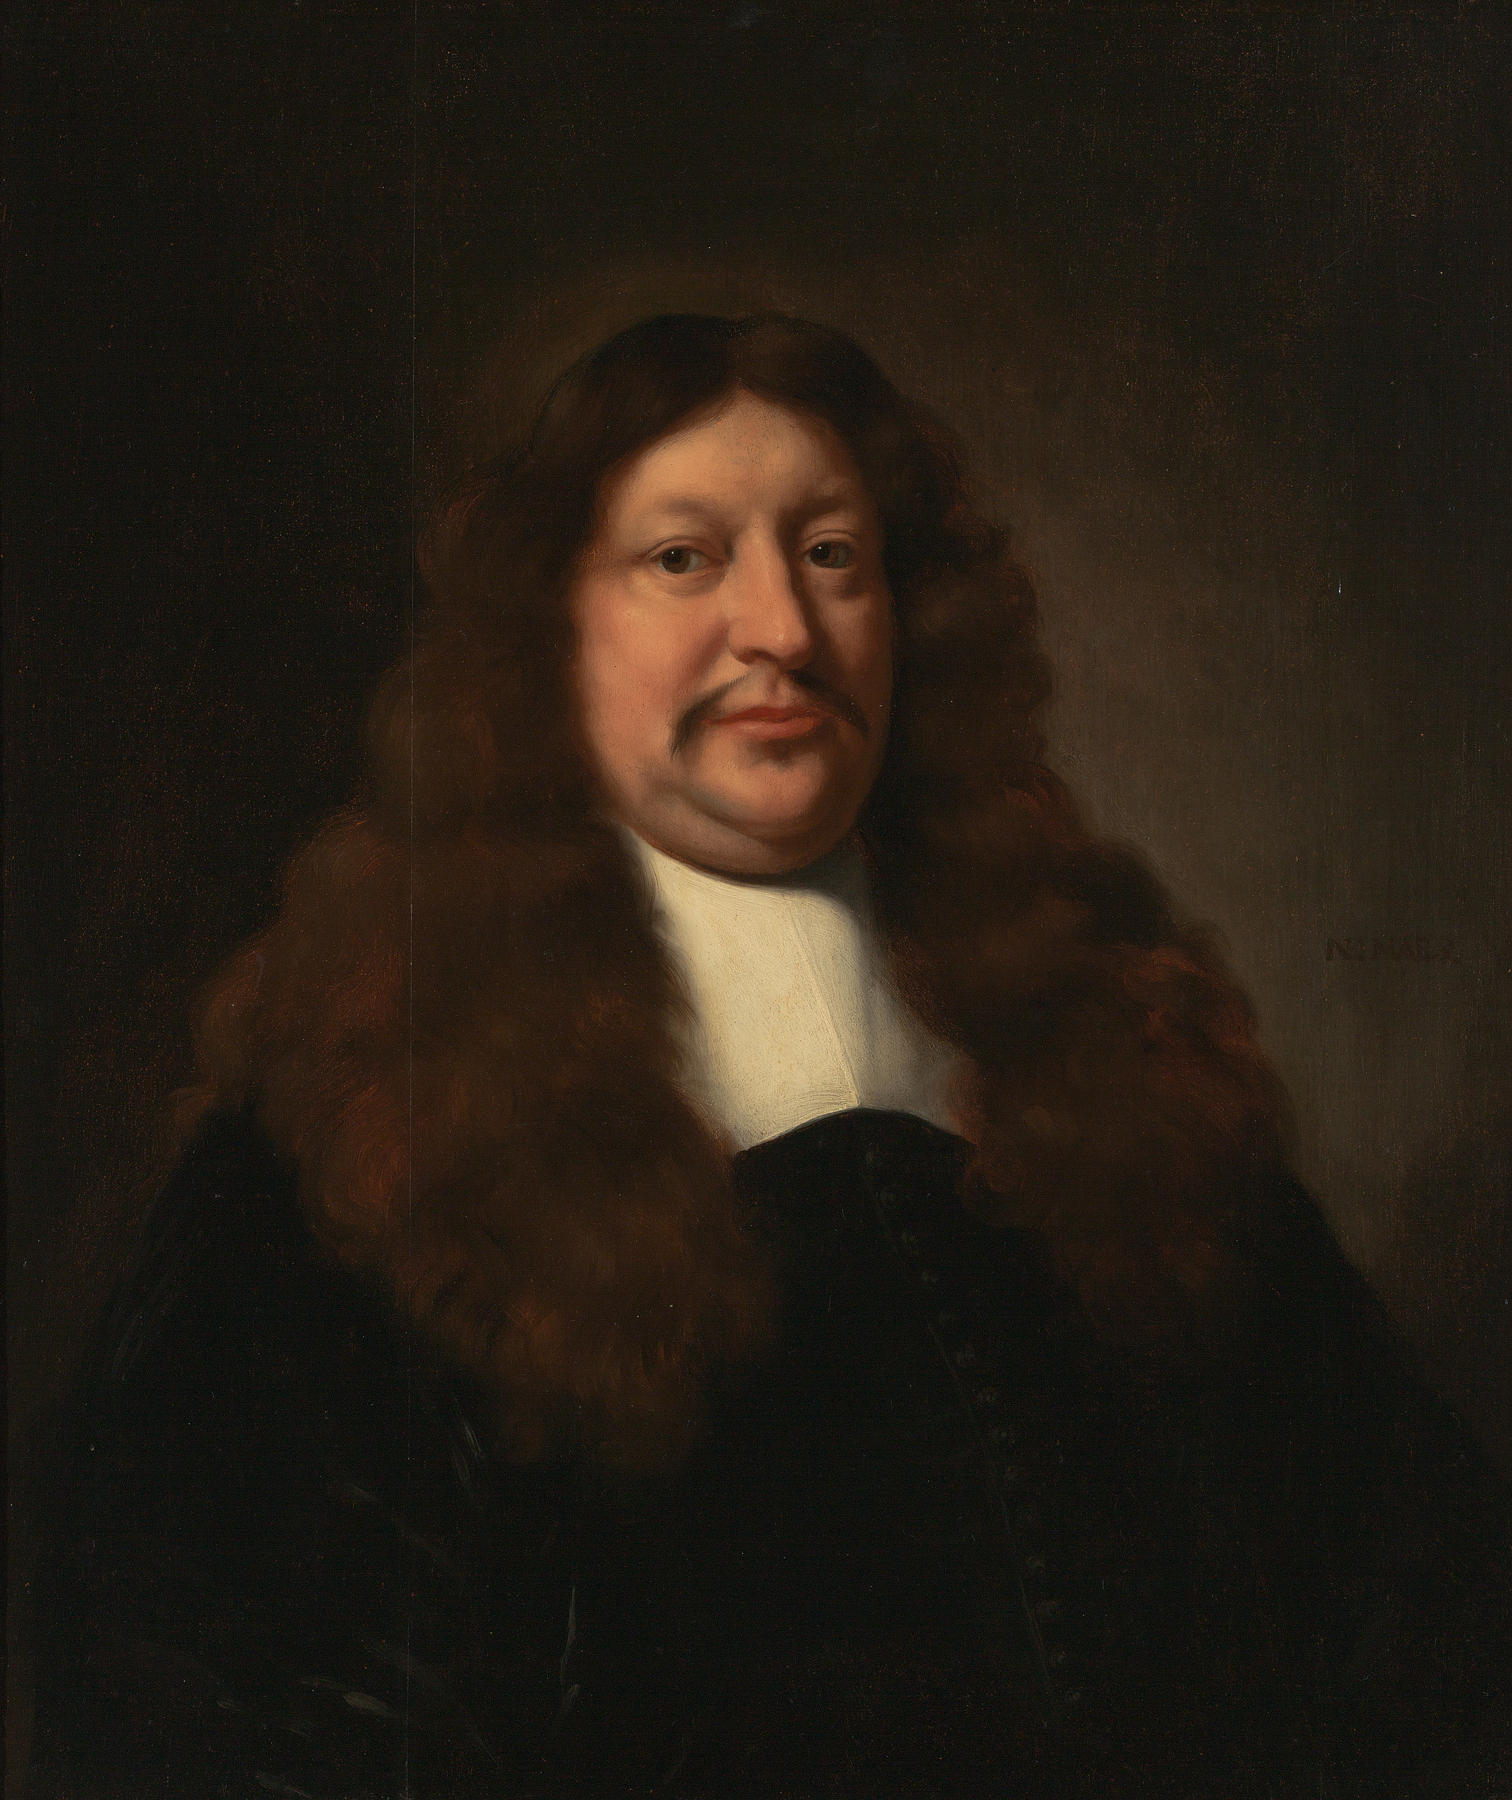 Nicolaes Maes, Portrait of Jan van Royen, ca. 1665. Oil on wood panel. Milwaukee Art Museum, Gift of Dr. and Mrs. Alfred Bader. Photo credit John R. Glembin